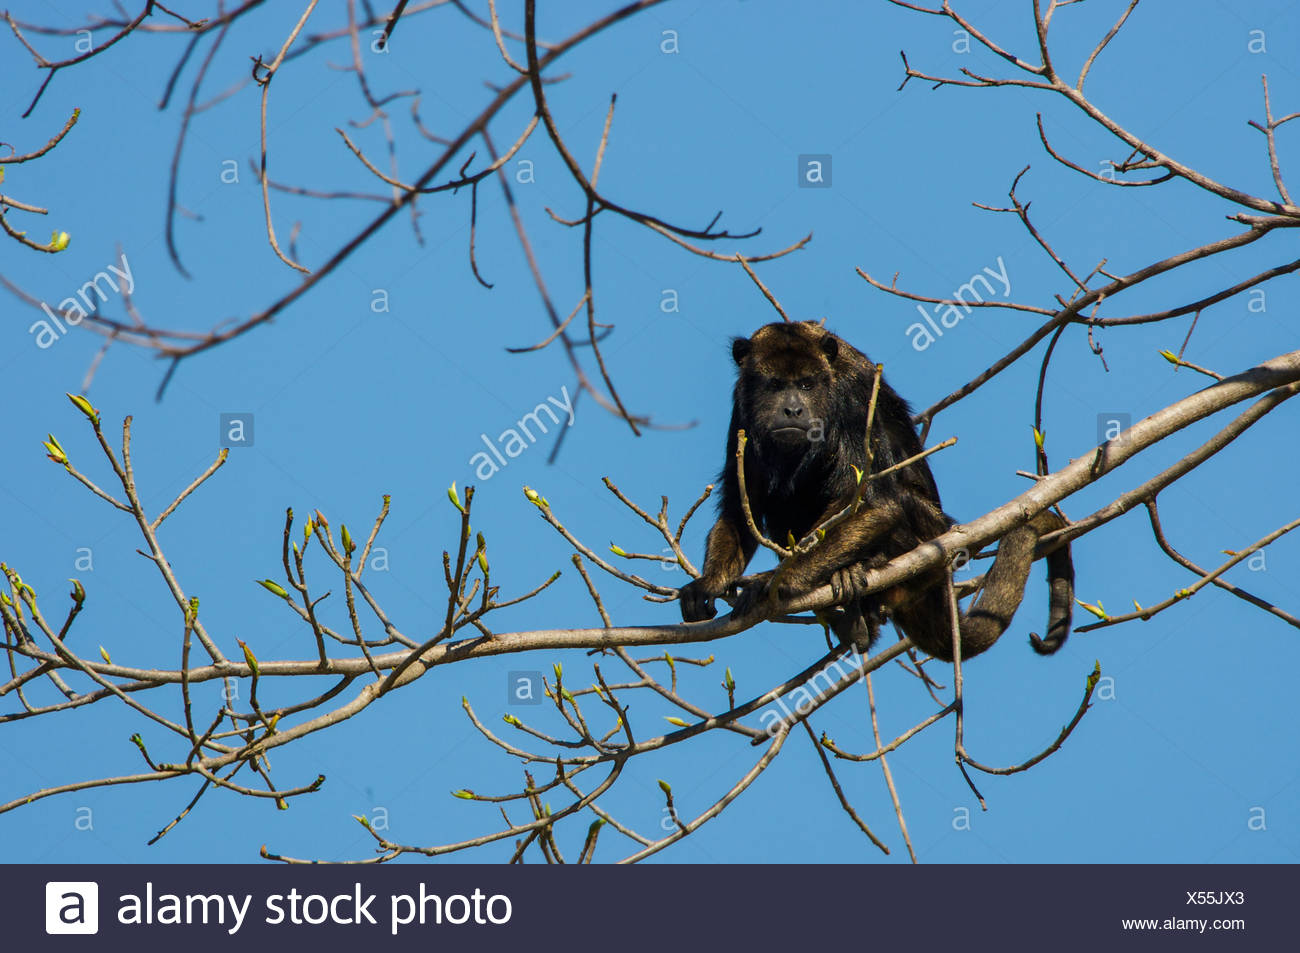 A monkey glaring down from a tree top. - Stock Image